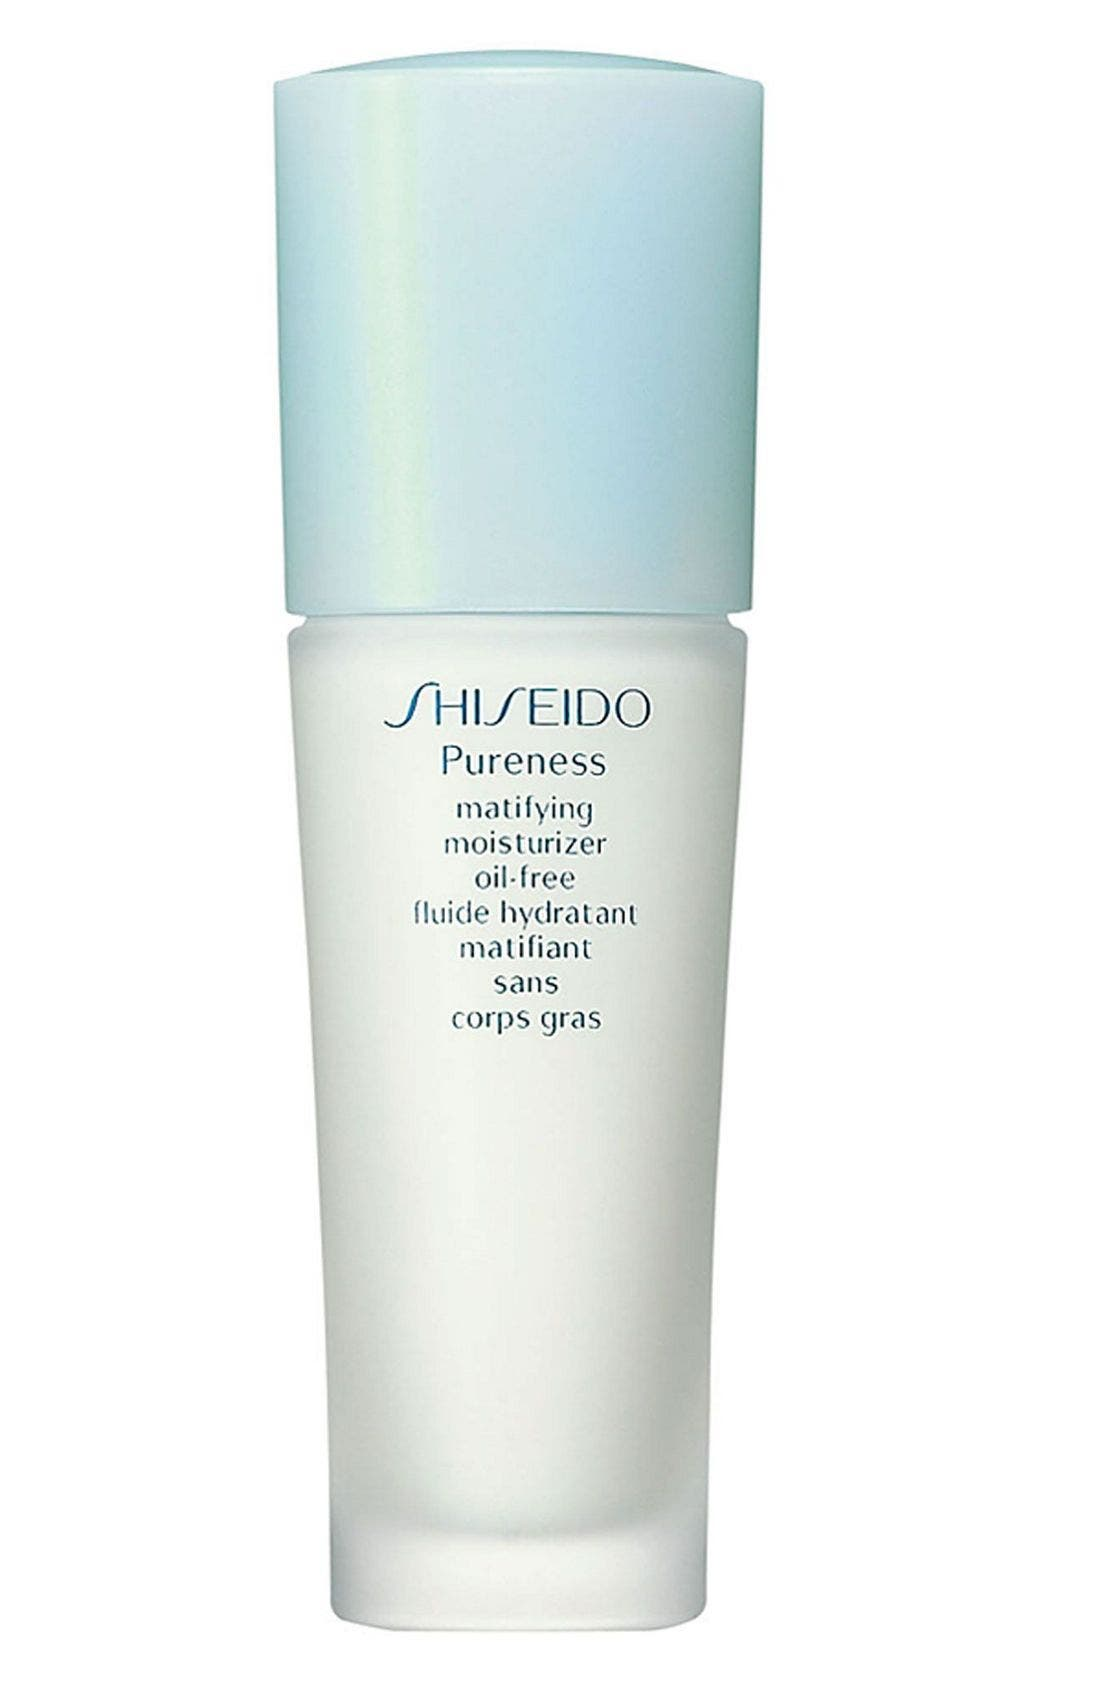 'Pureness' Oil-Free Matifying Moisturizer,                             Main thumbnail 1, color,                             000